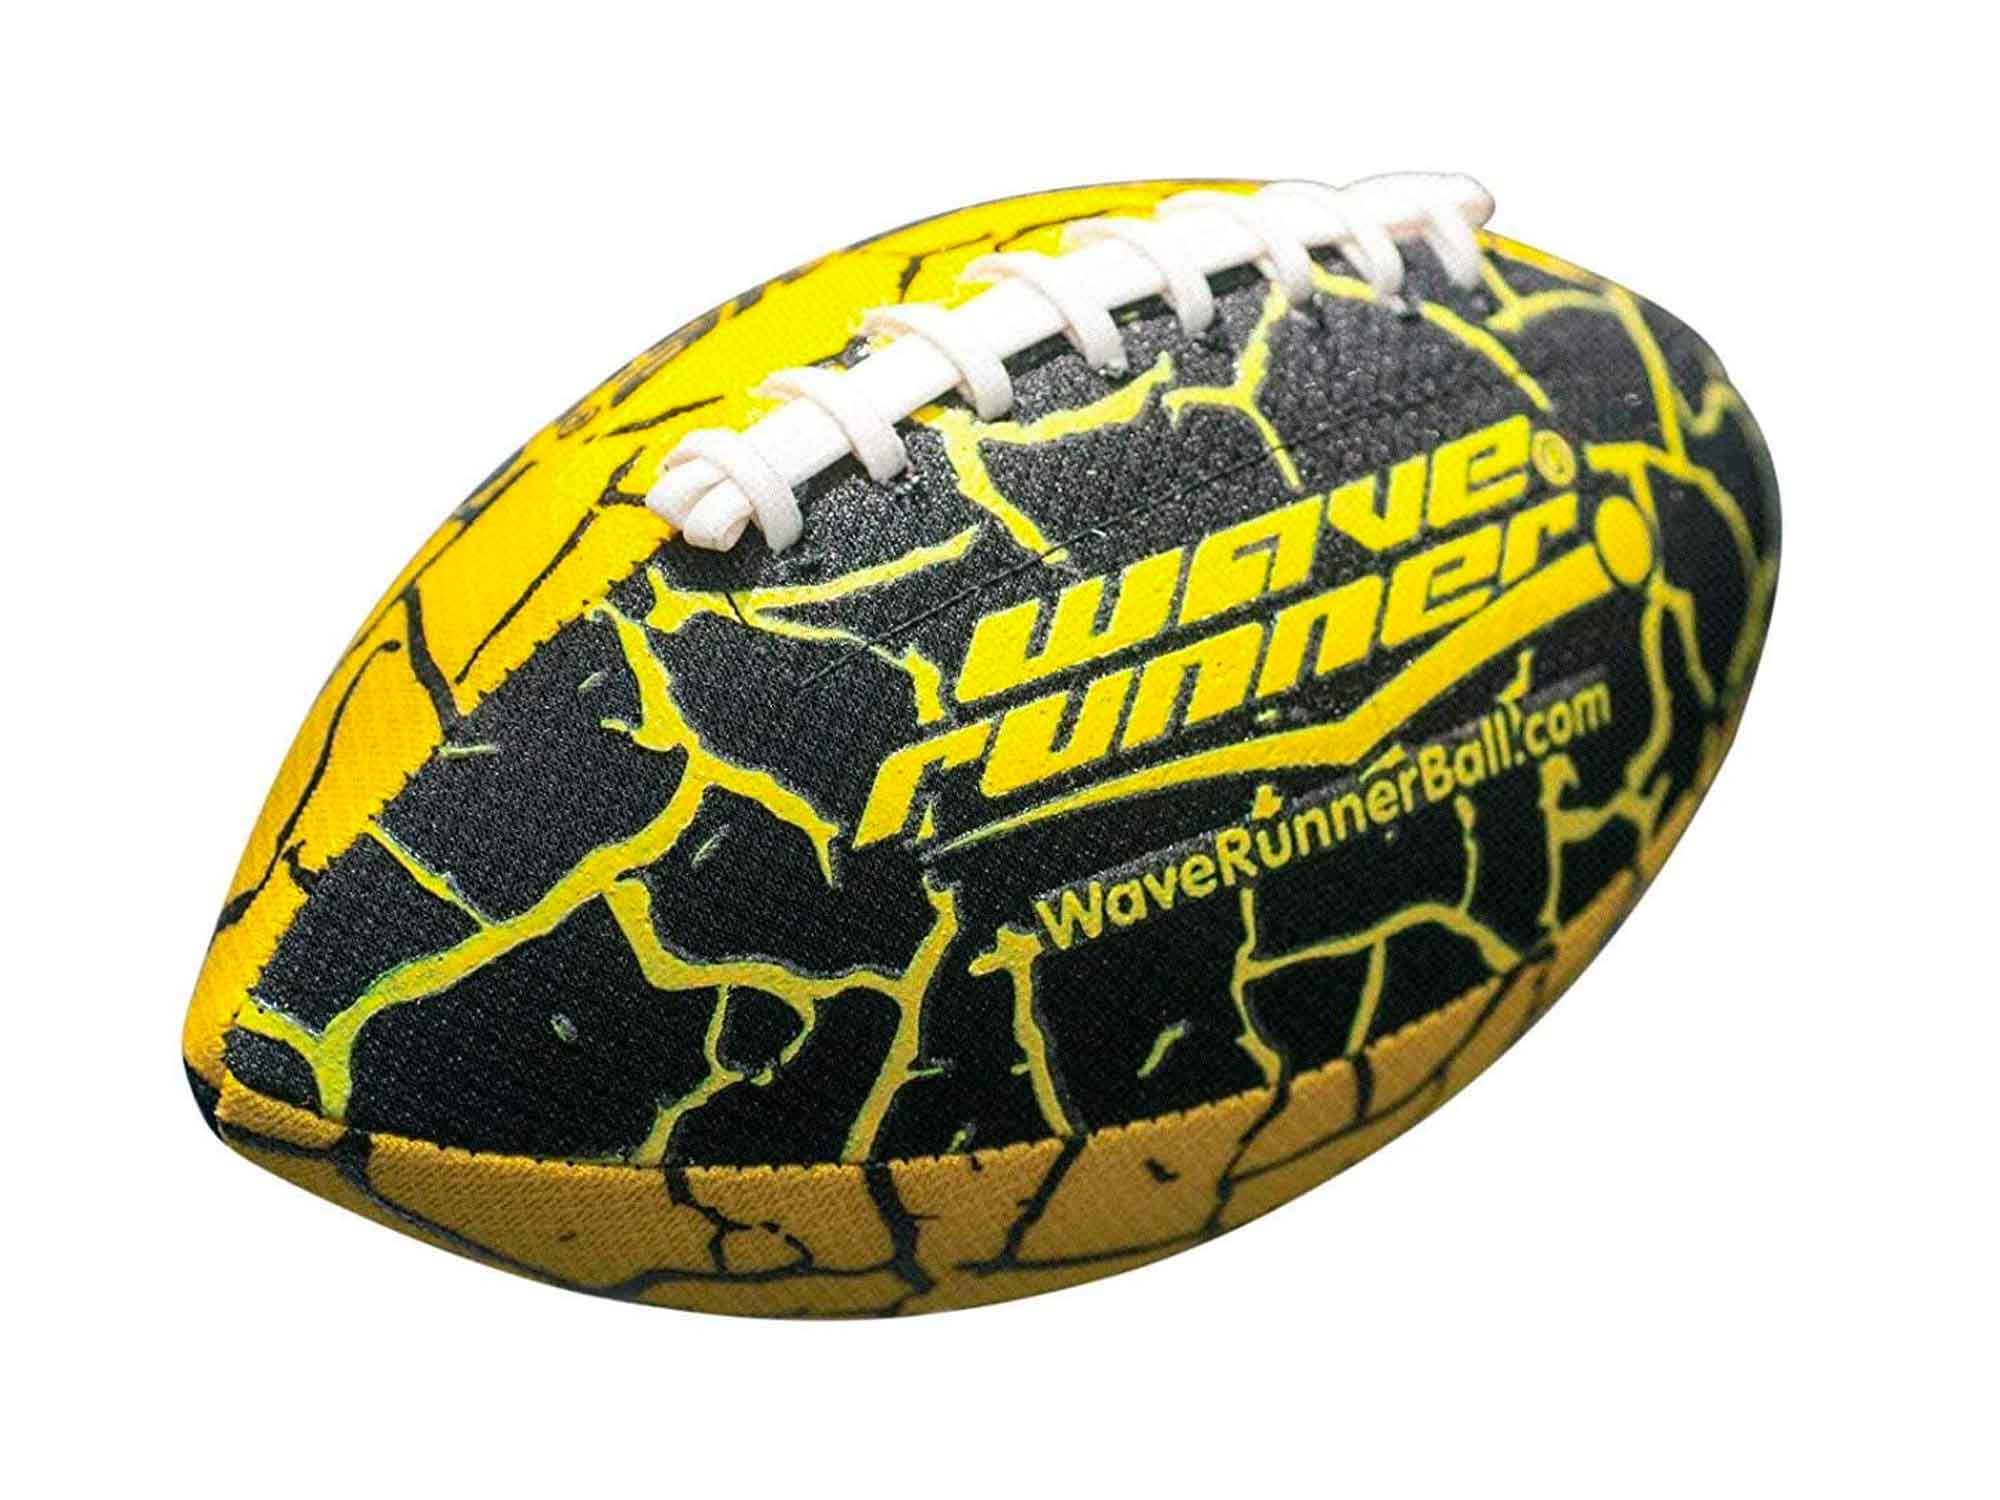 Wave Runner Grip It Waterproof Football- Size 9.25 Inches with Sure-Grip Technology | Let's Play Football in The Water!